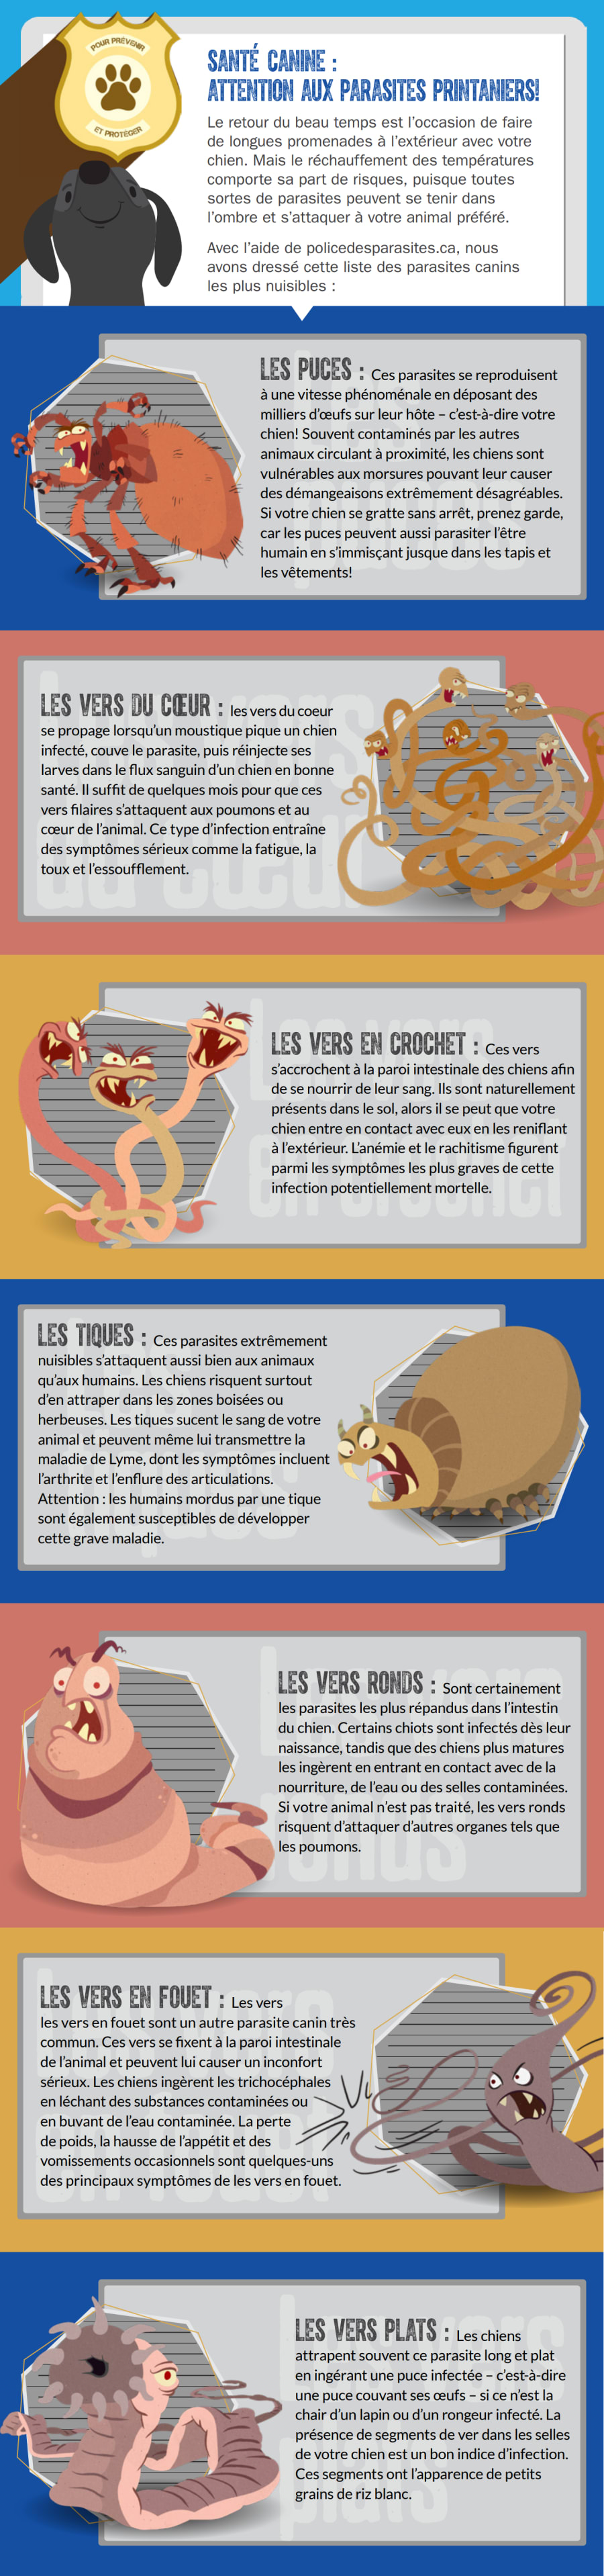 Santé canine: attention aux parasites